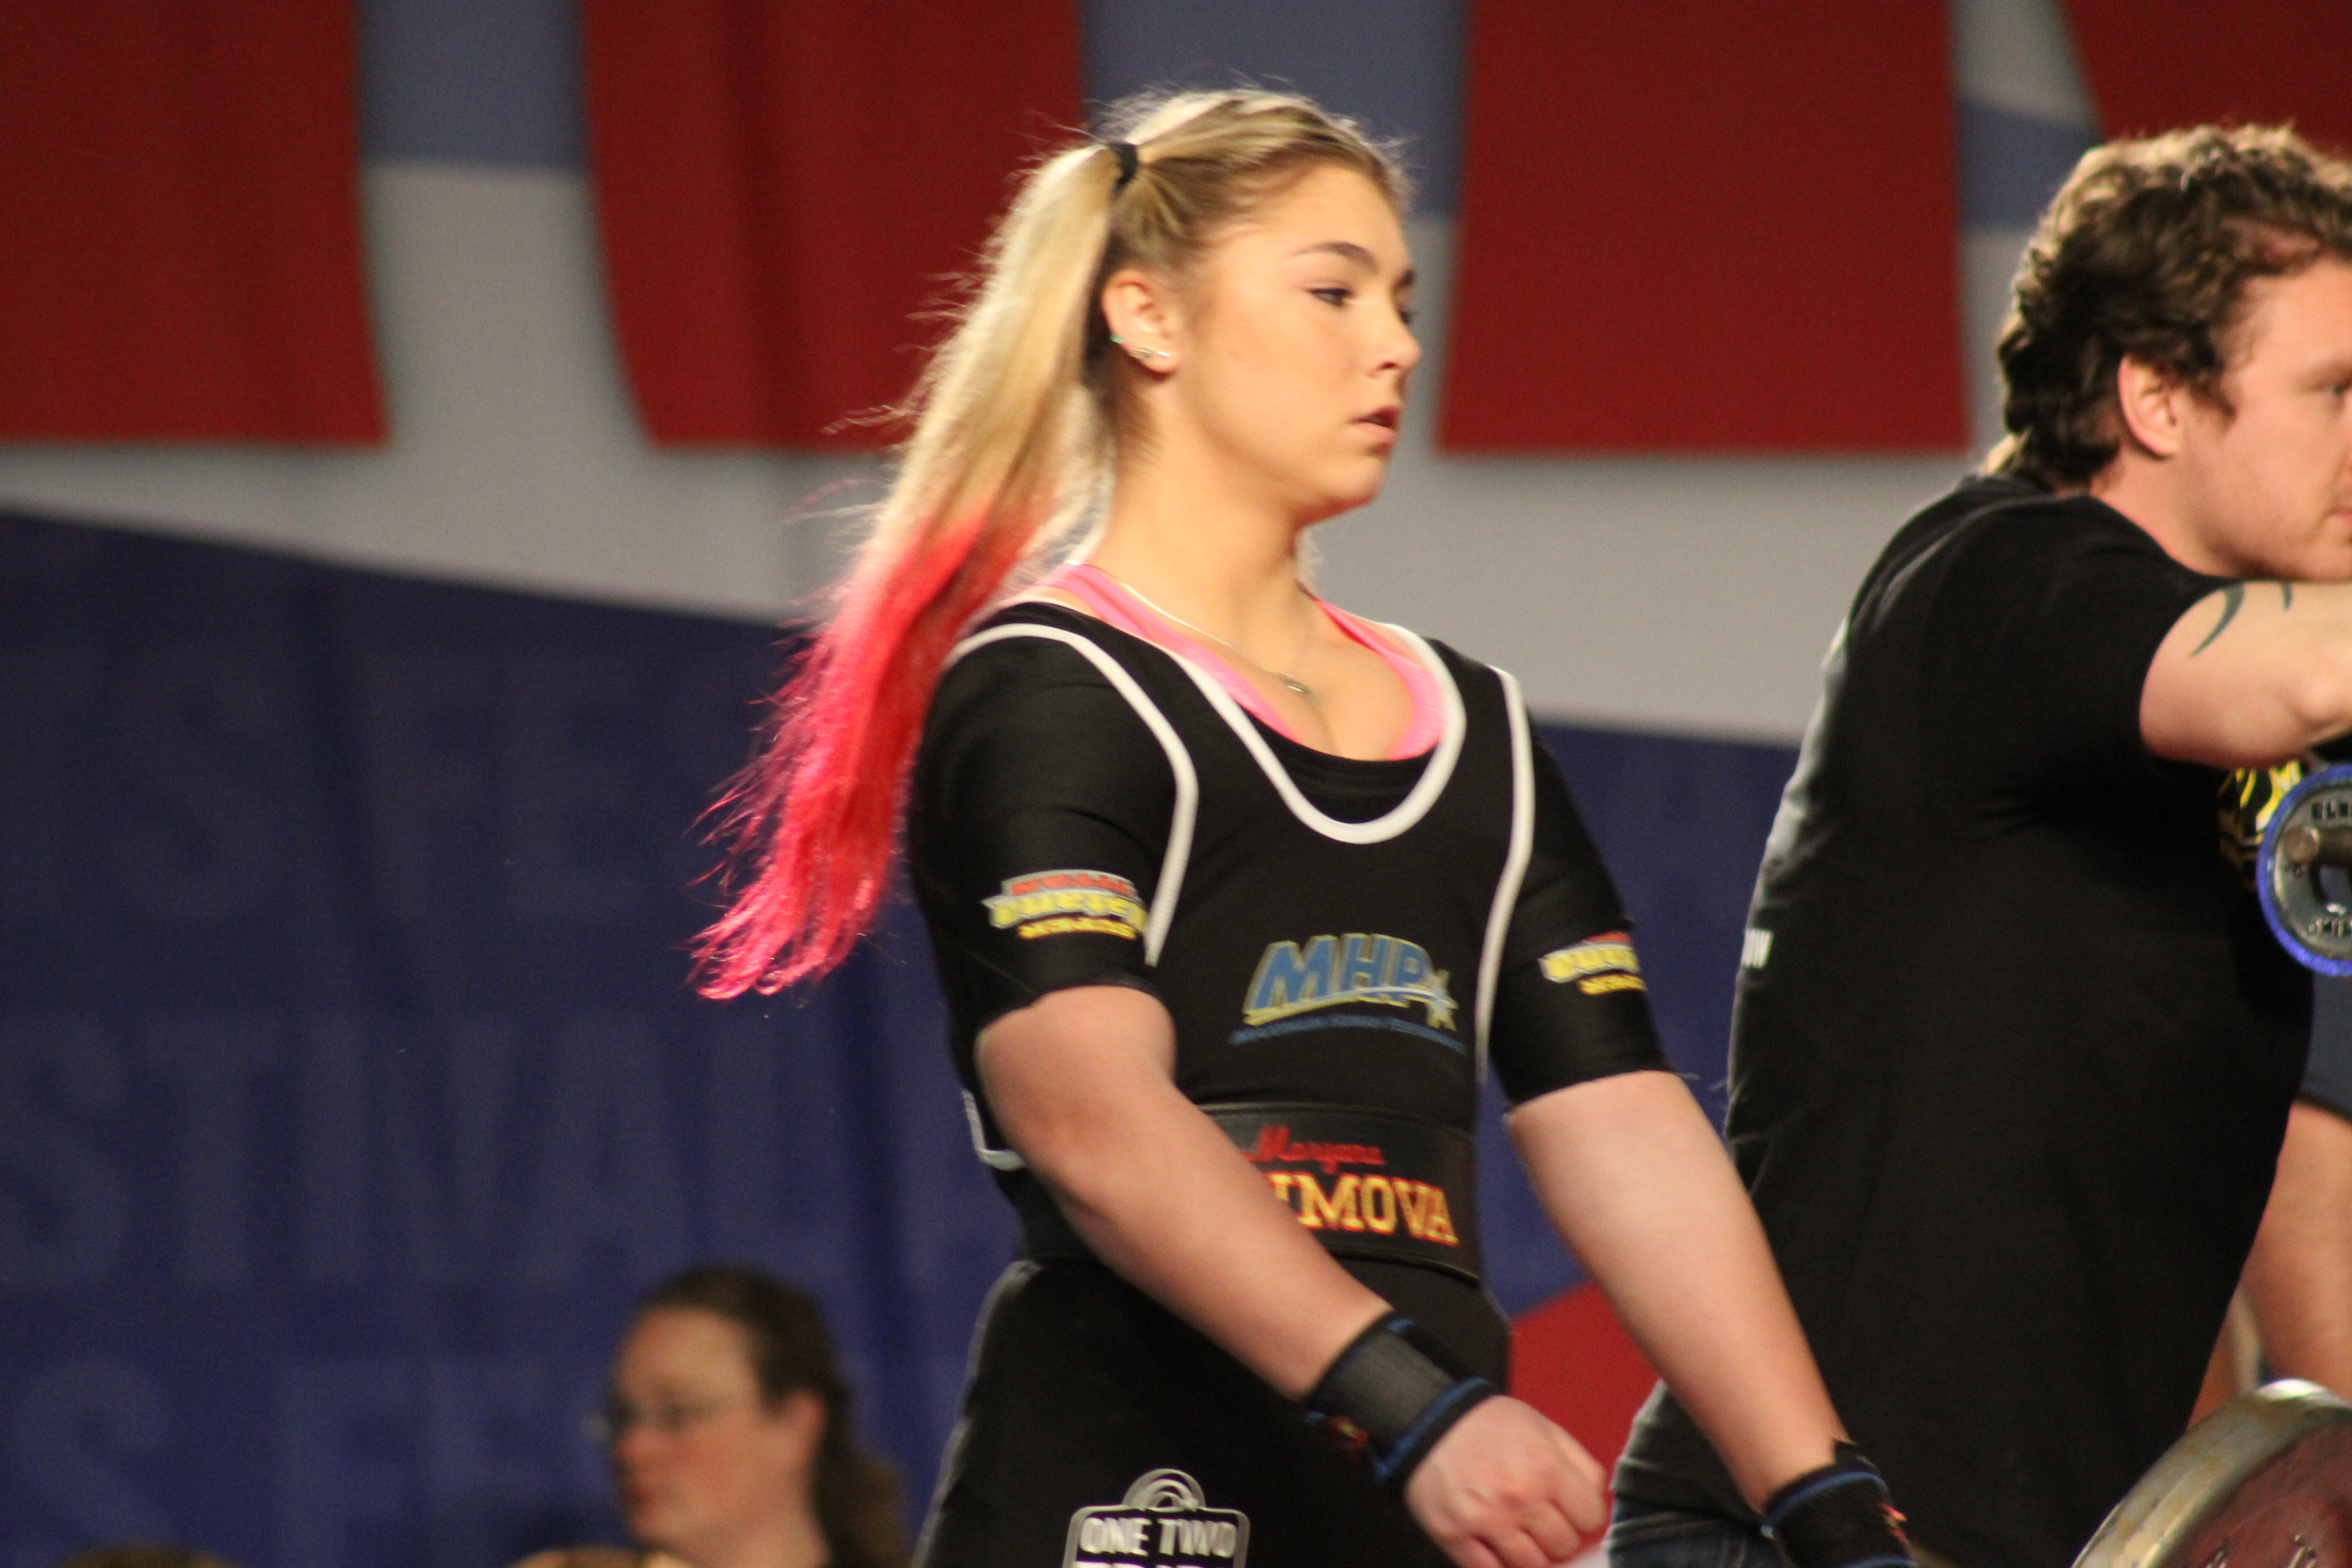 Wo womens bench press records by weight class - But The One Phenom Everyone Was Talking About Was 14 Year Old Maryana Naumova